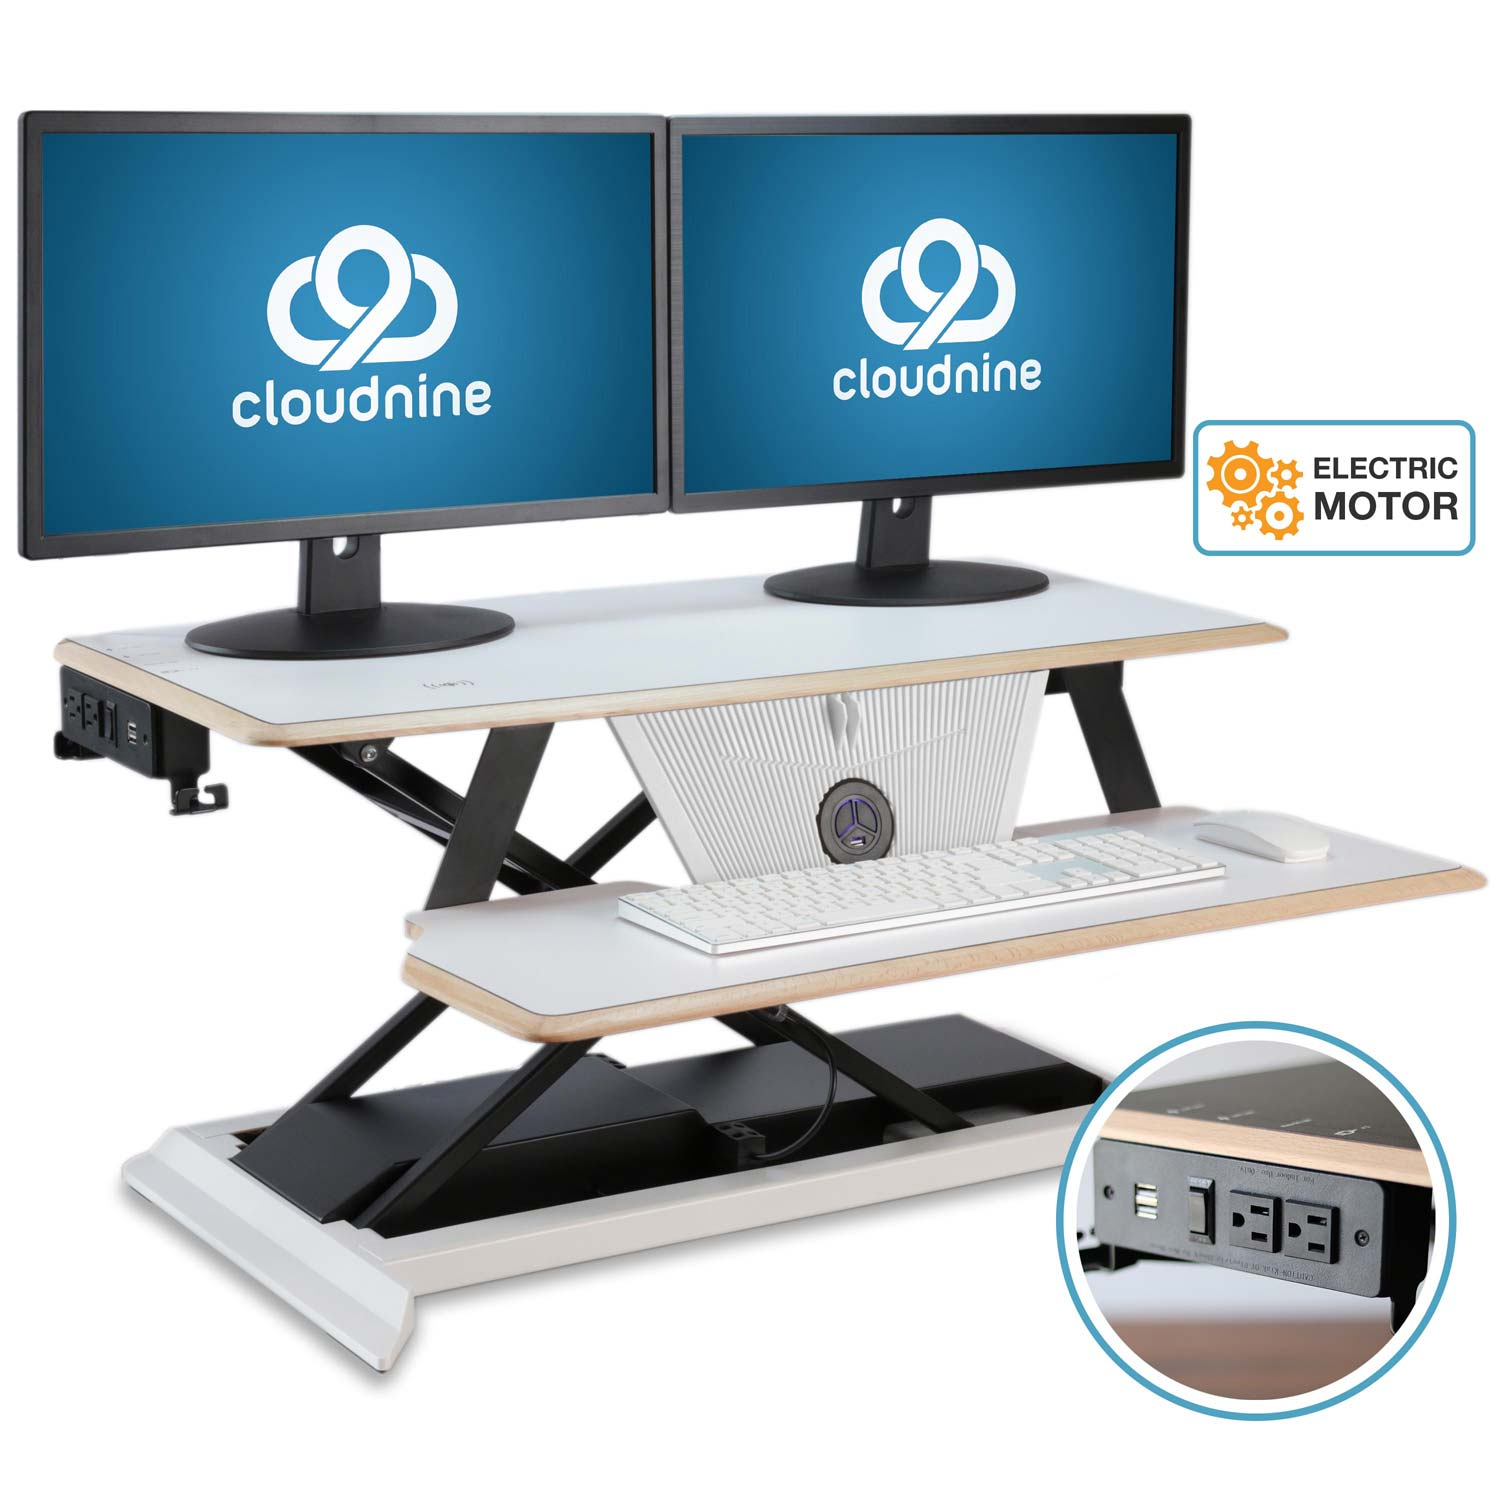 Picture of: Cloud Nine Electric Height Adjustable Desk Converter Sit To Stand Desk Cloudnine Ergonomic Solutions